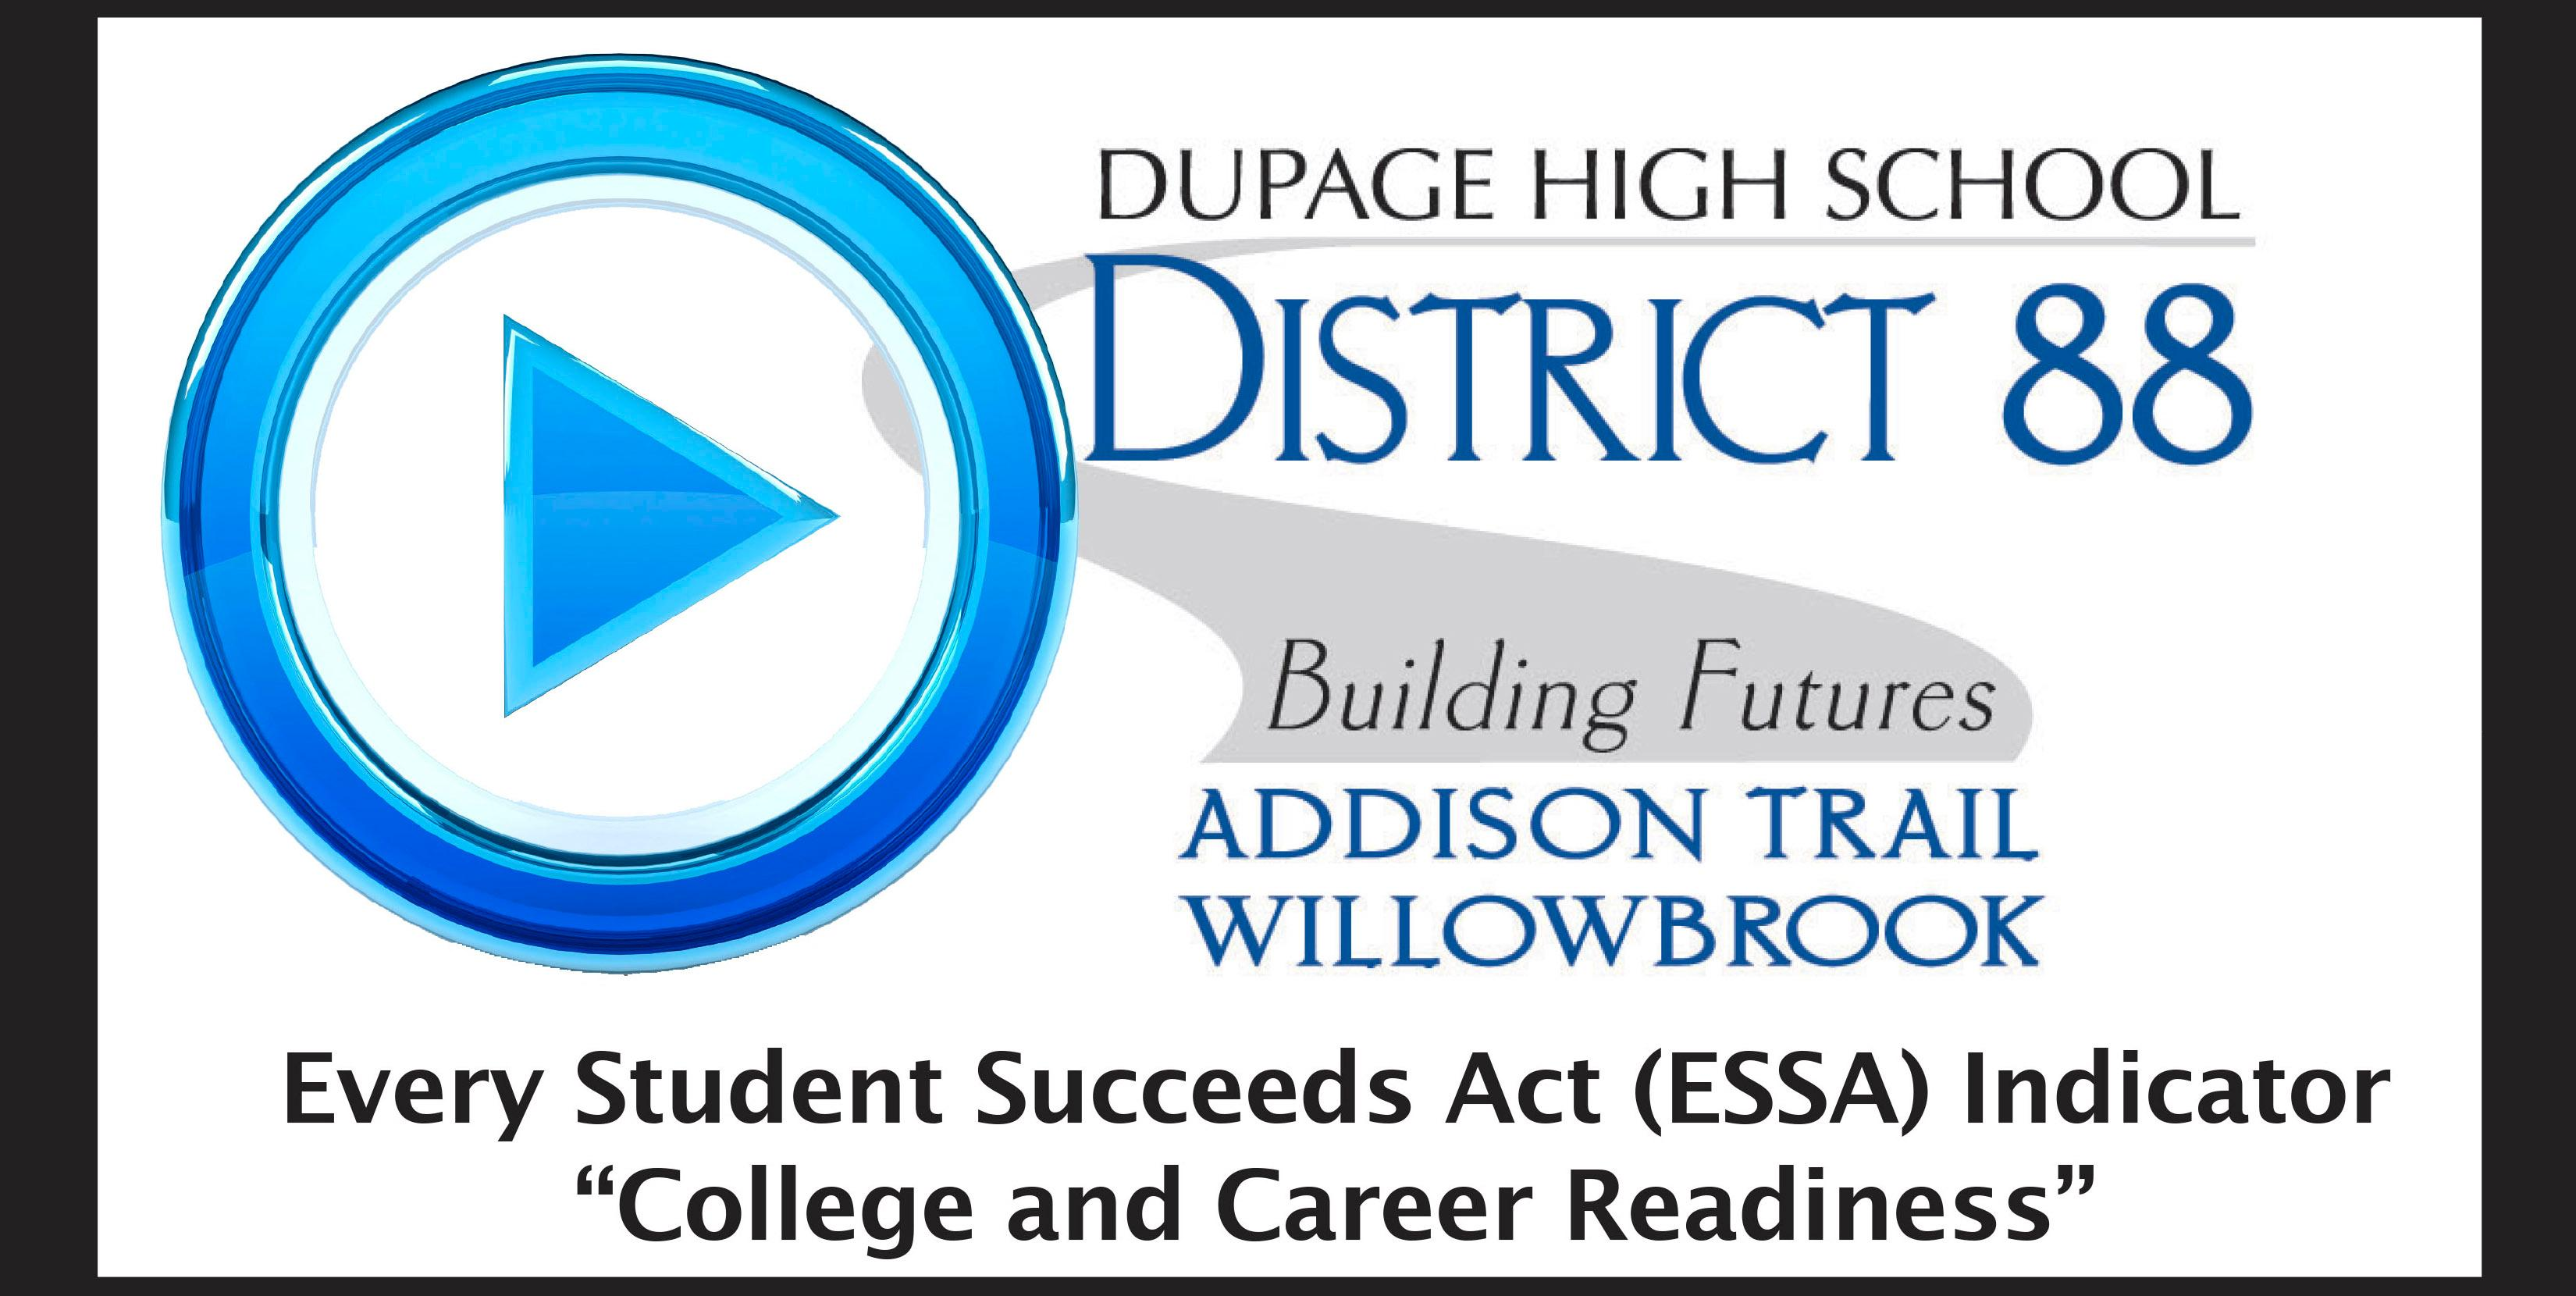 As District 88 embarks on Strategic Planning process, the district shares how its vision and goals are aligned with the Every Student Succeeds Act